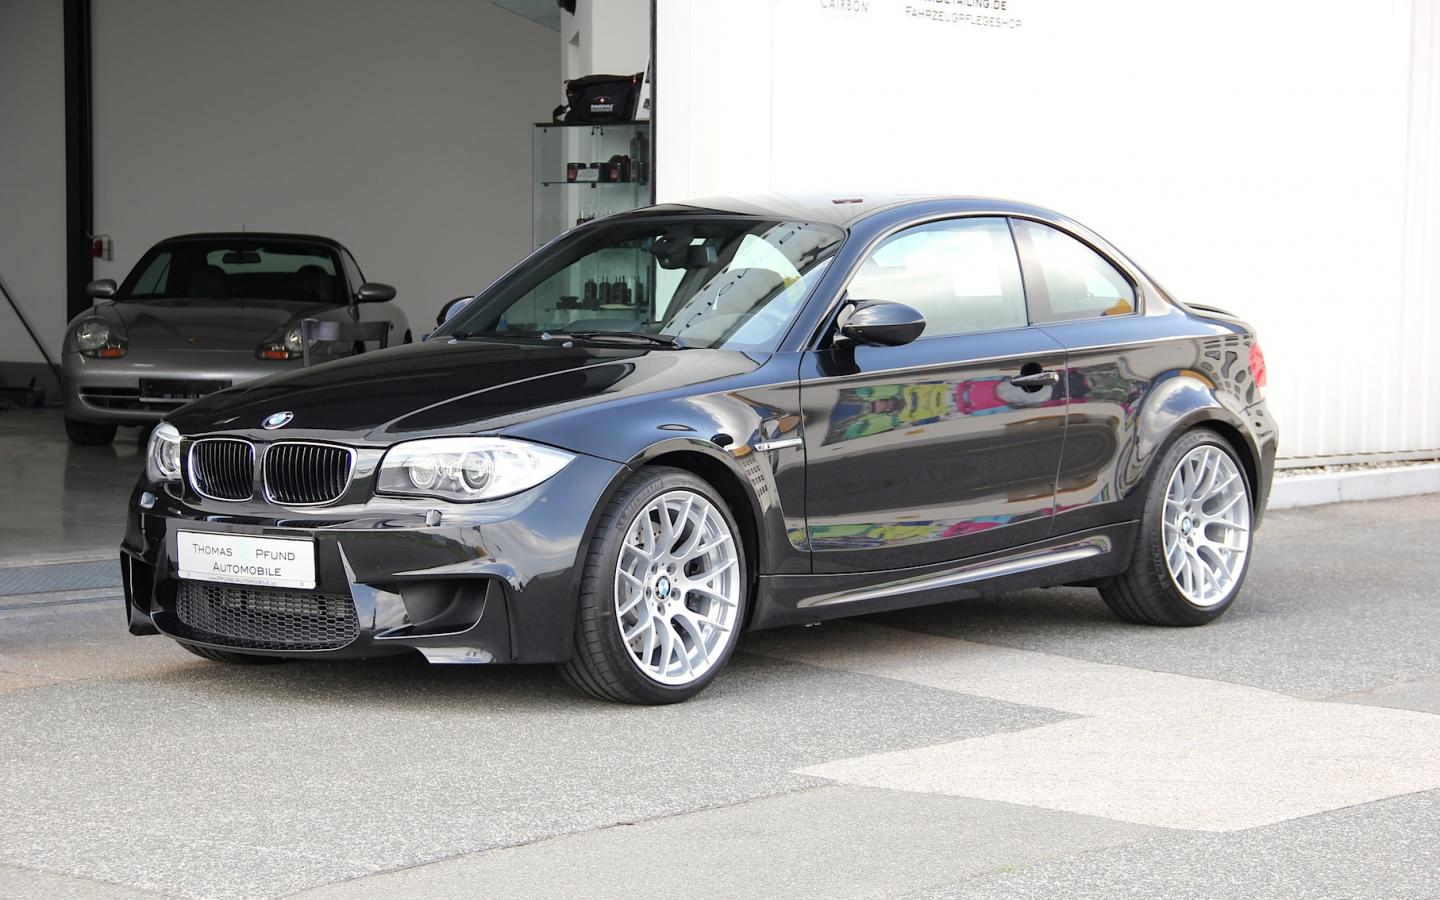 bmw 1er m schwarz orig 10 tkm navi thomas pfund. Black Bedroom Furniture Sets. Home Design Ideas